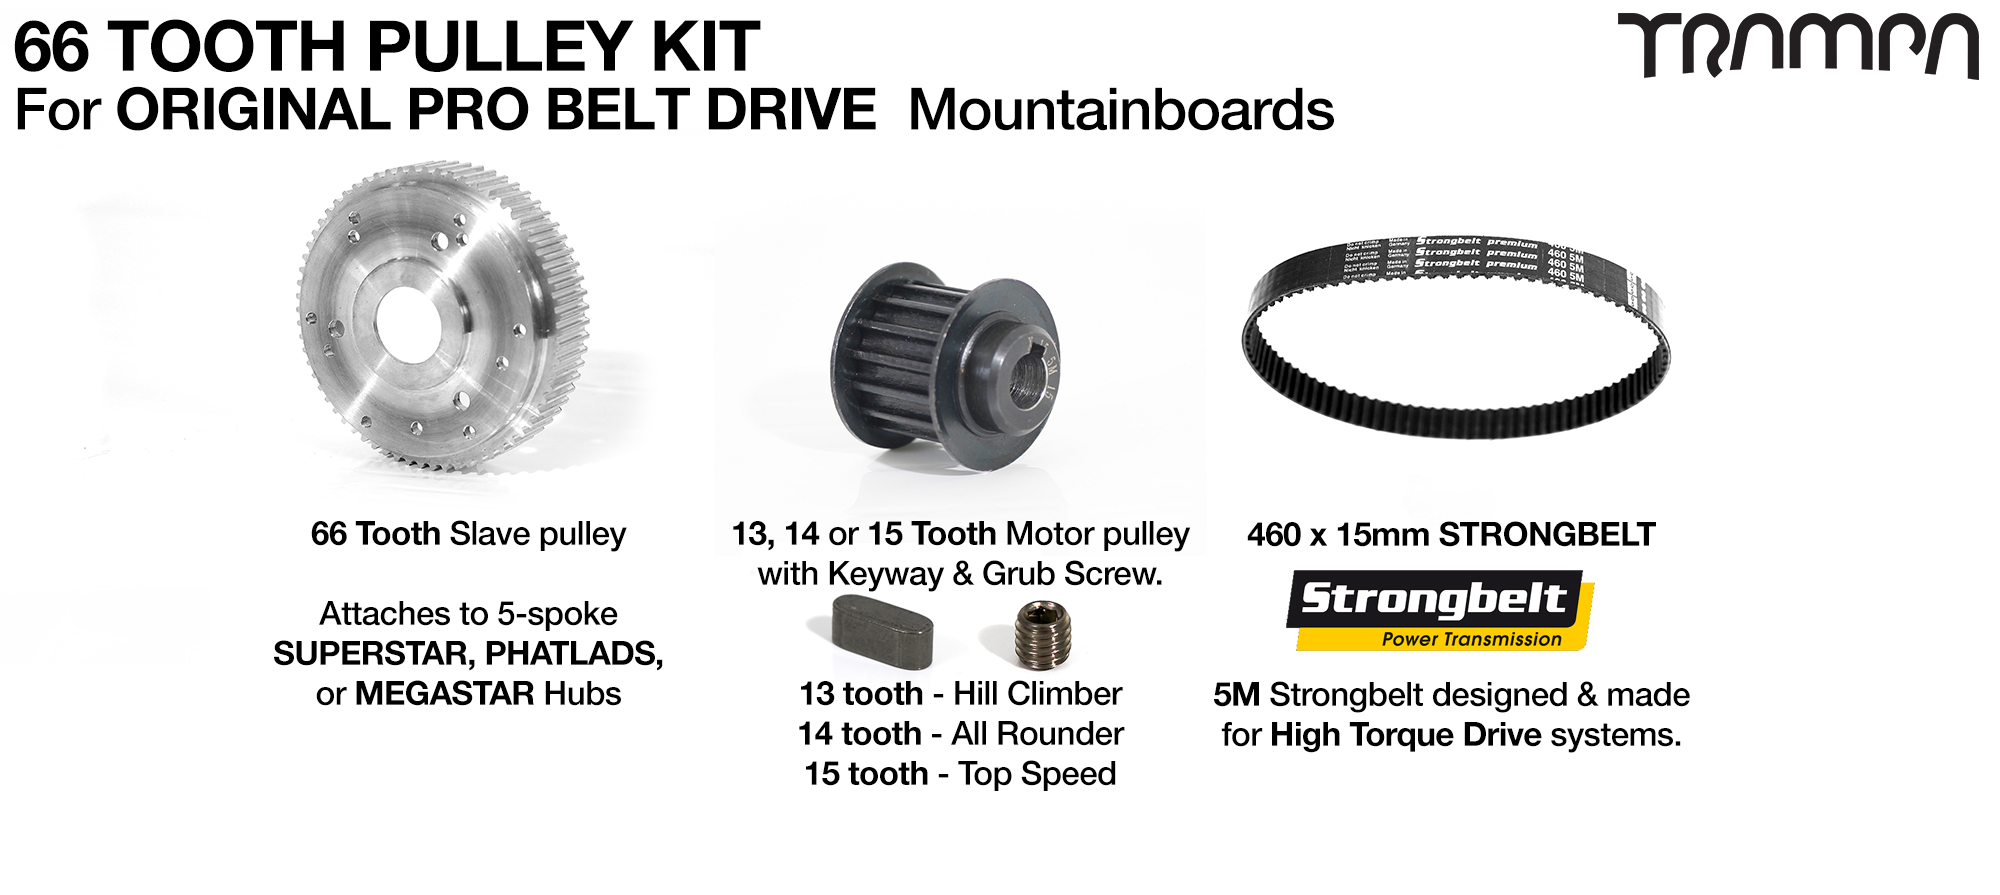 Original 2017 PRO MTB  Pulley Kit with 66 Tooth Slave & 460mm belt for 8 Inch HYPA or SUPERSTAR